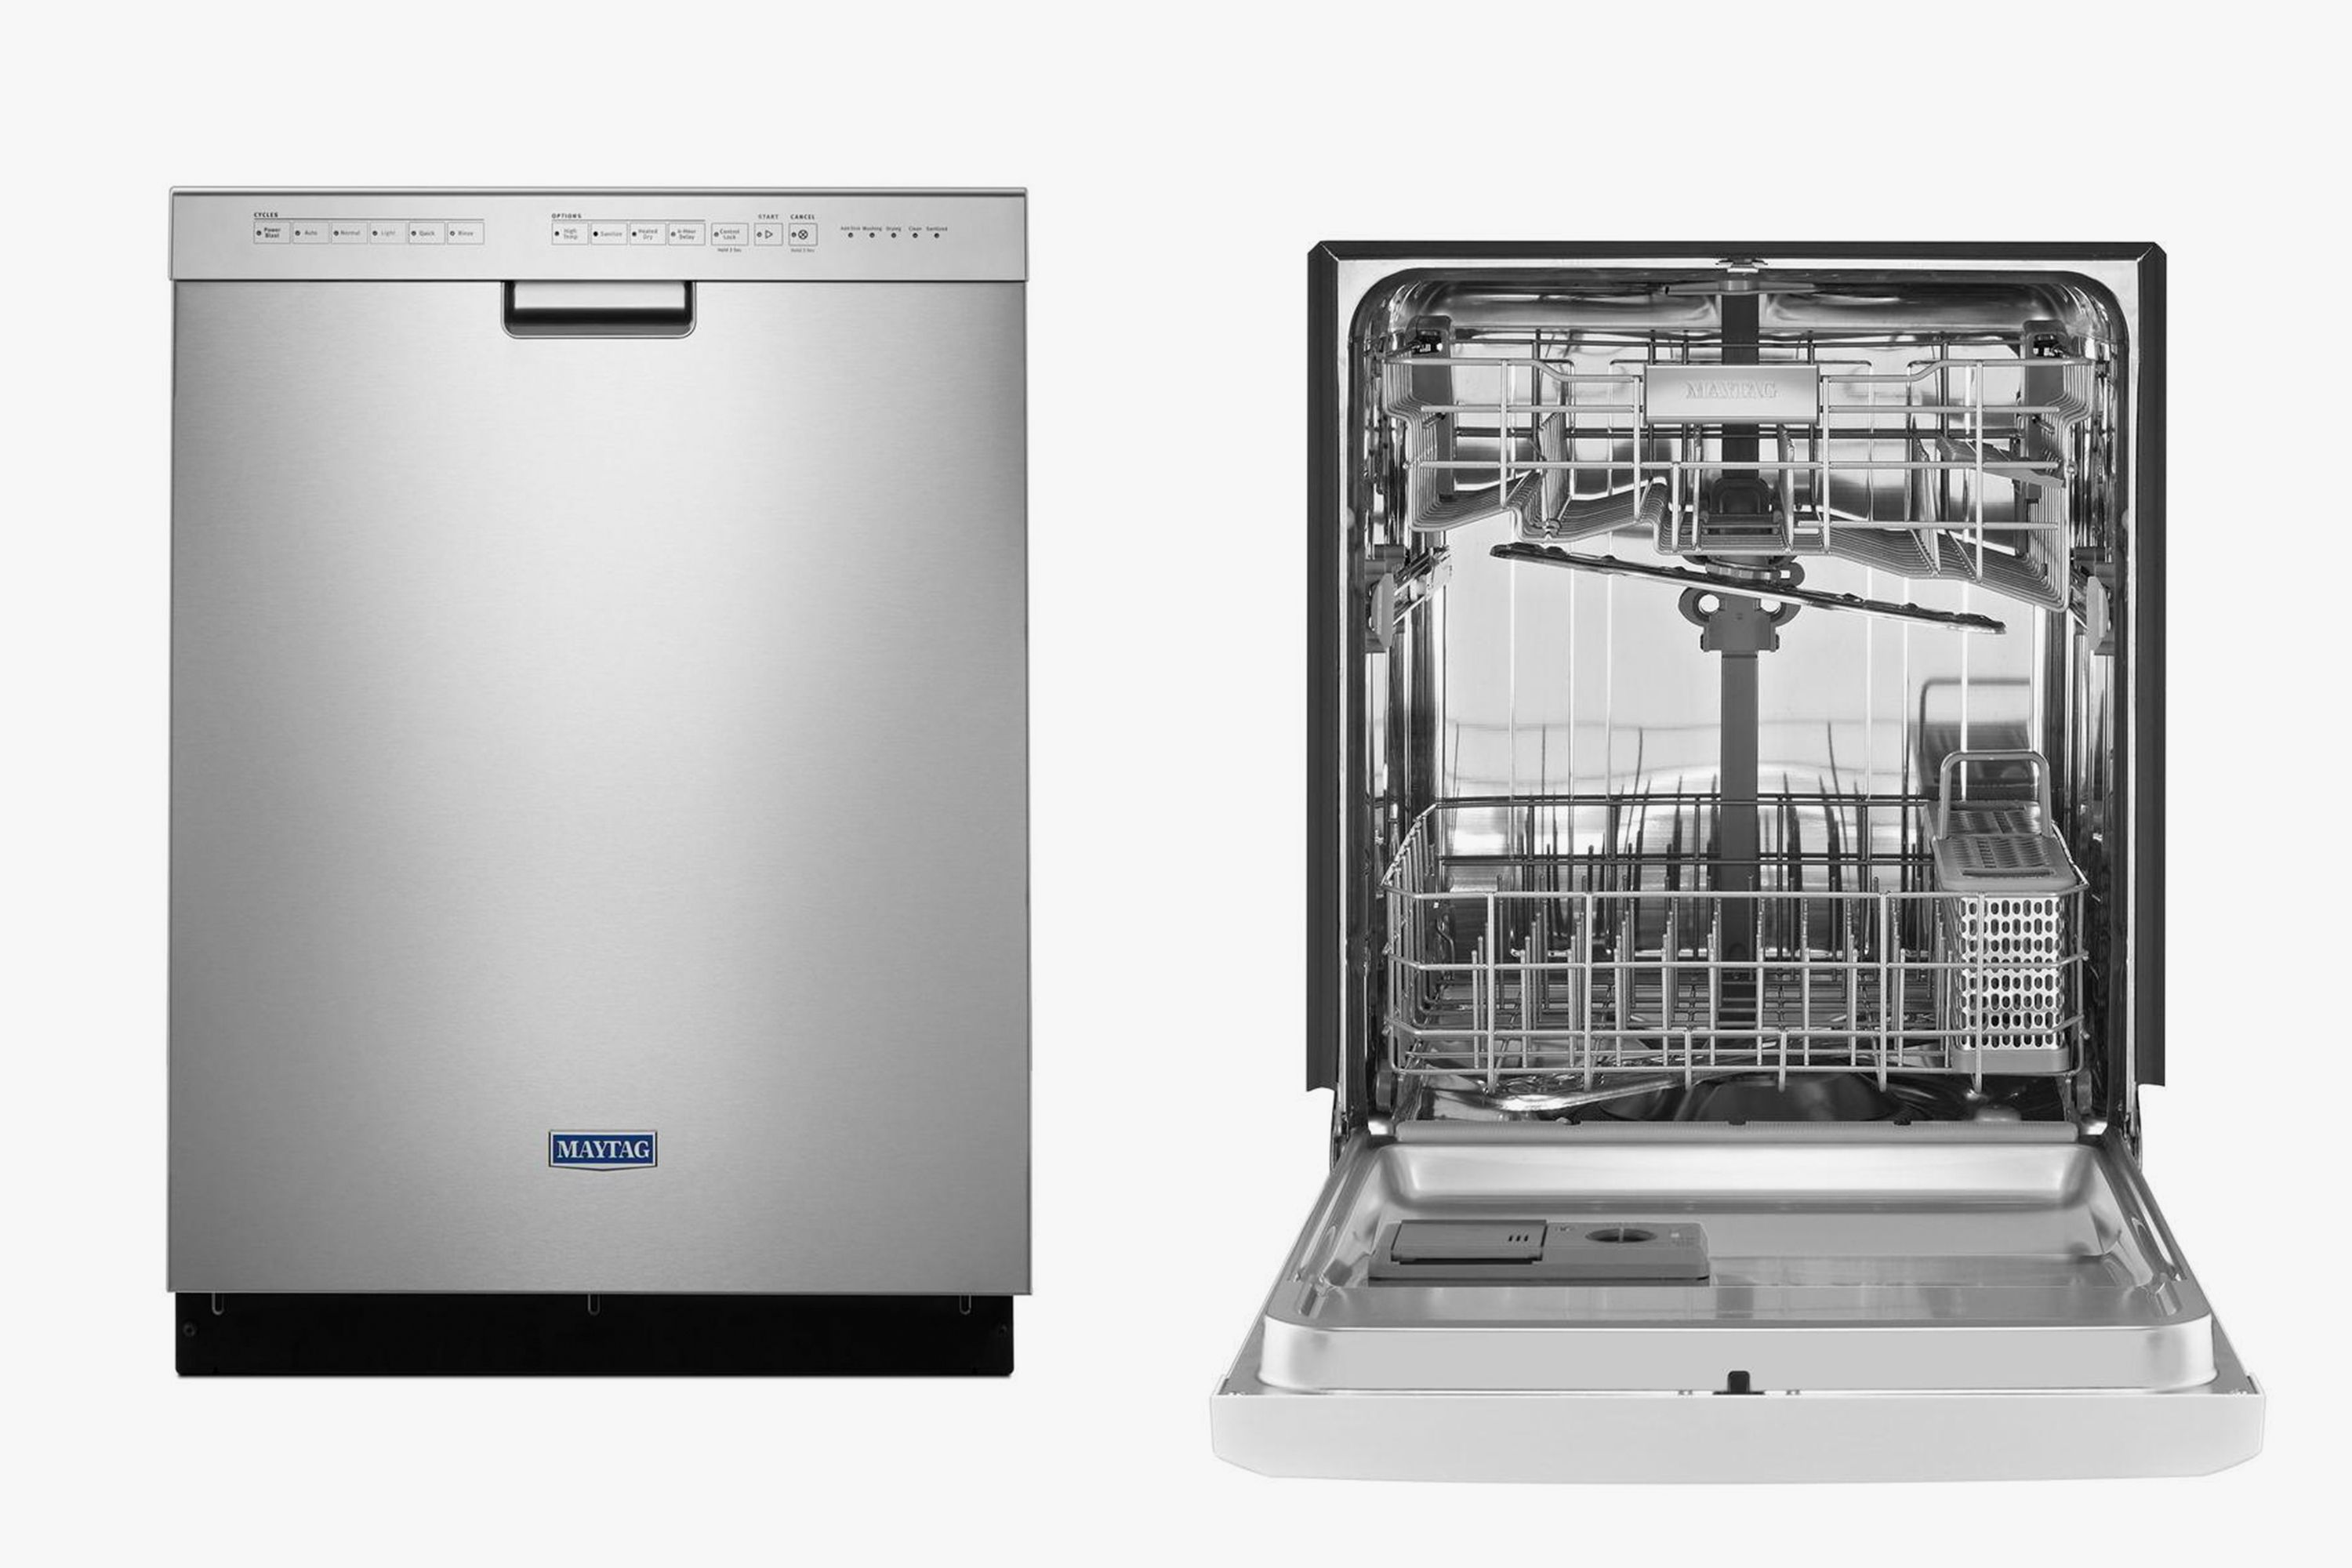 After Researching Dishwashers For Over 100 Hours We Found The Best One For Your Kitchen Dishwasher Reviews Best Dishwasher Top Dishwasher